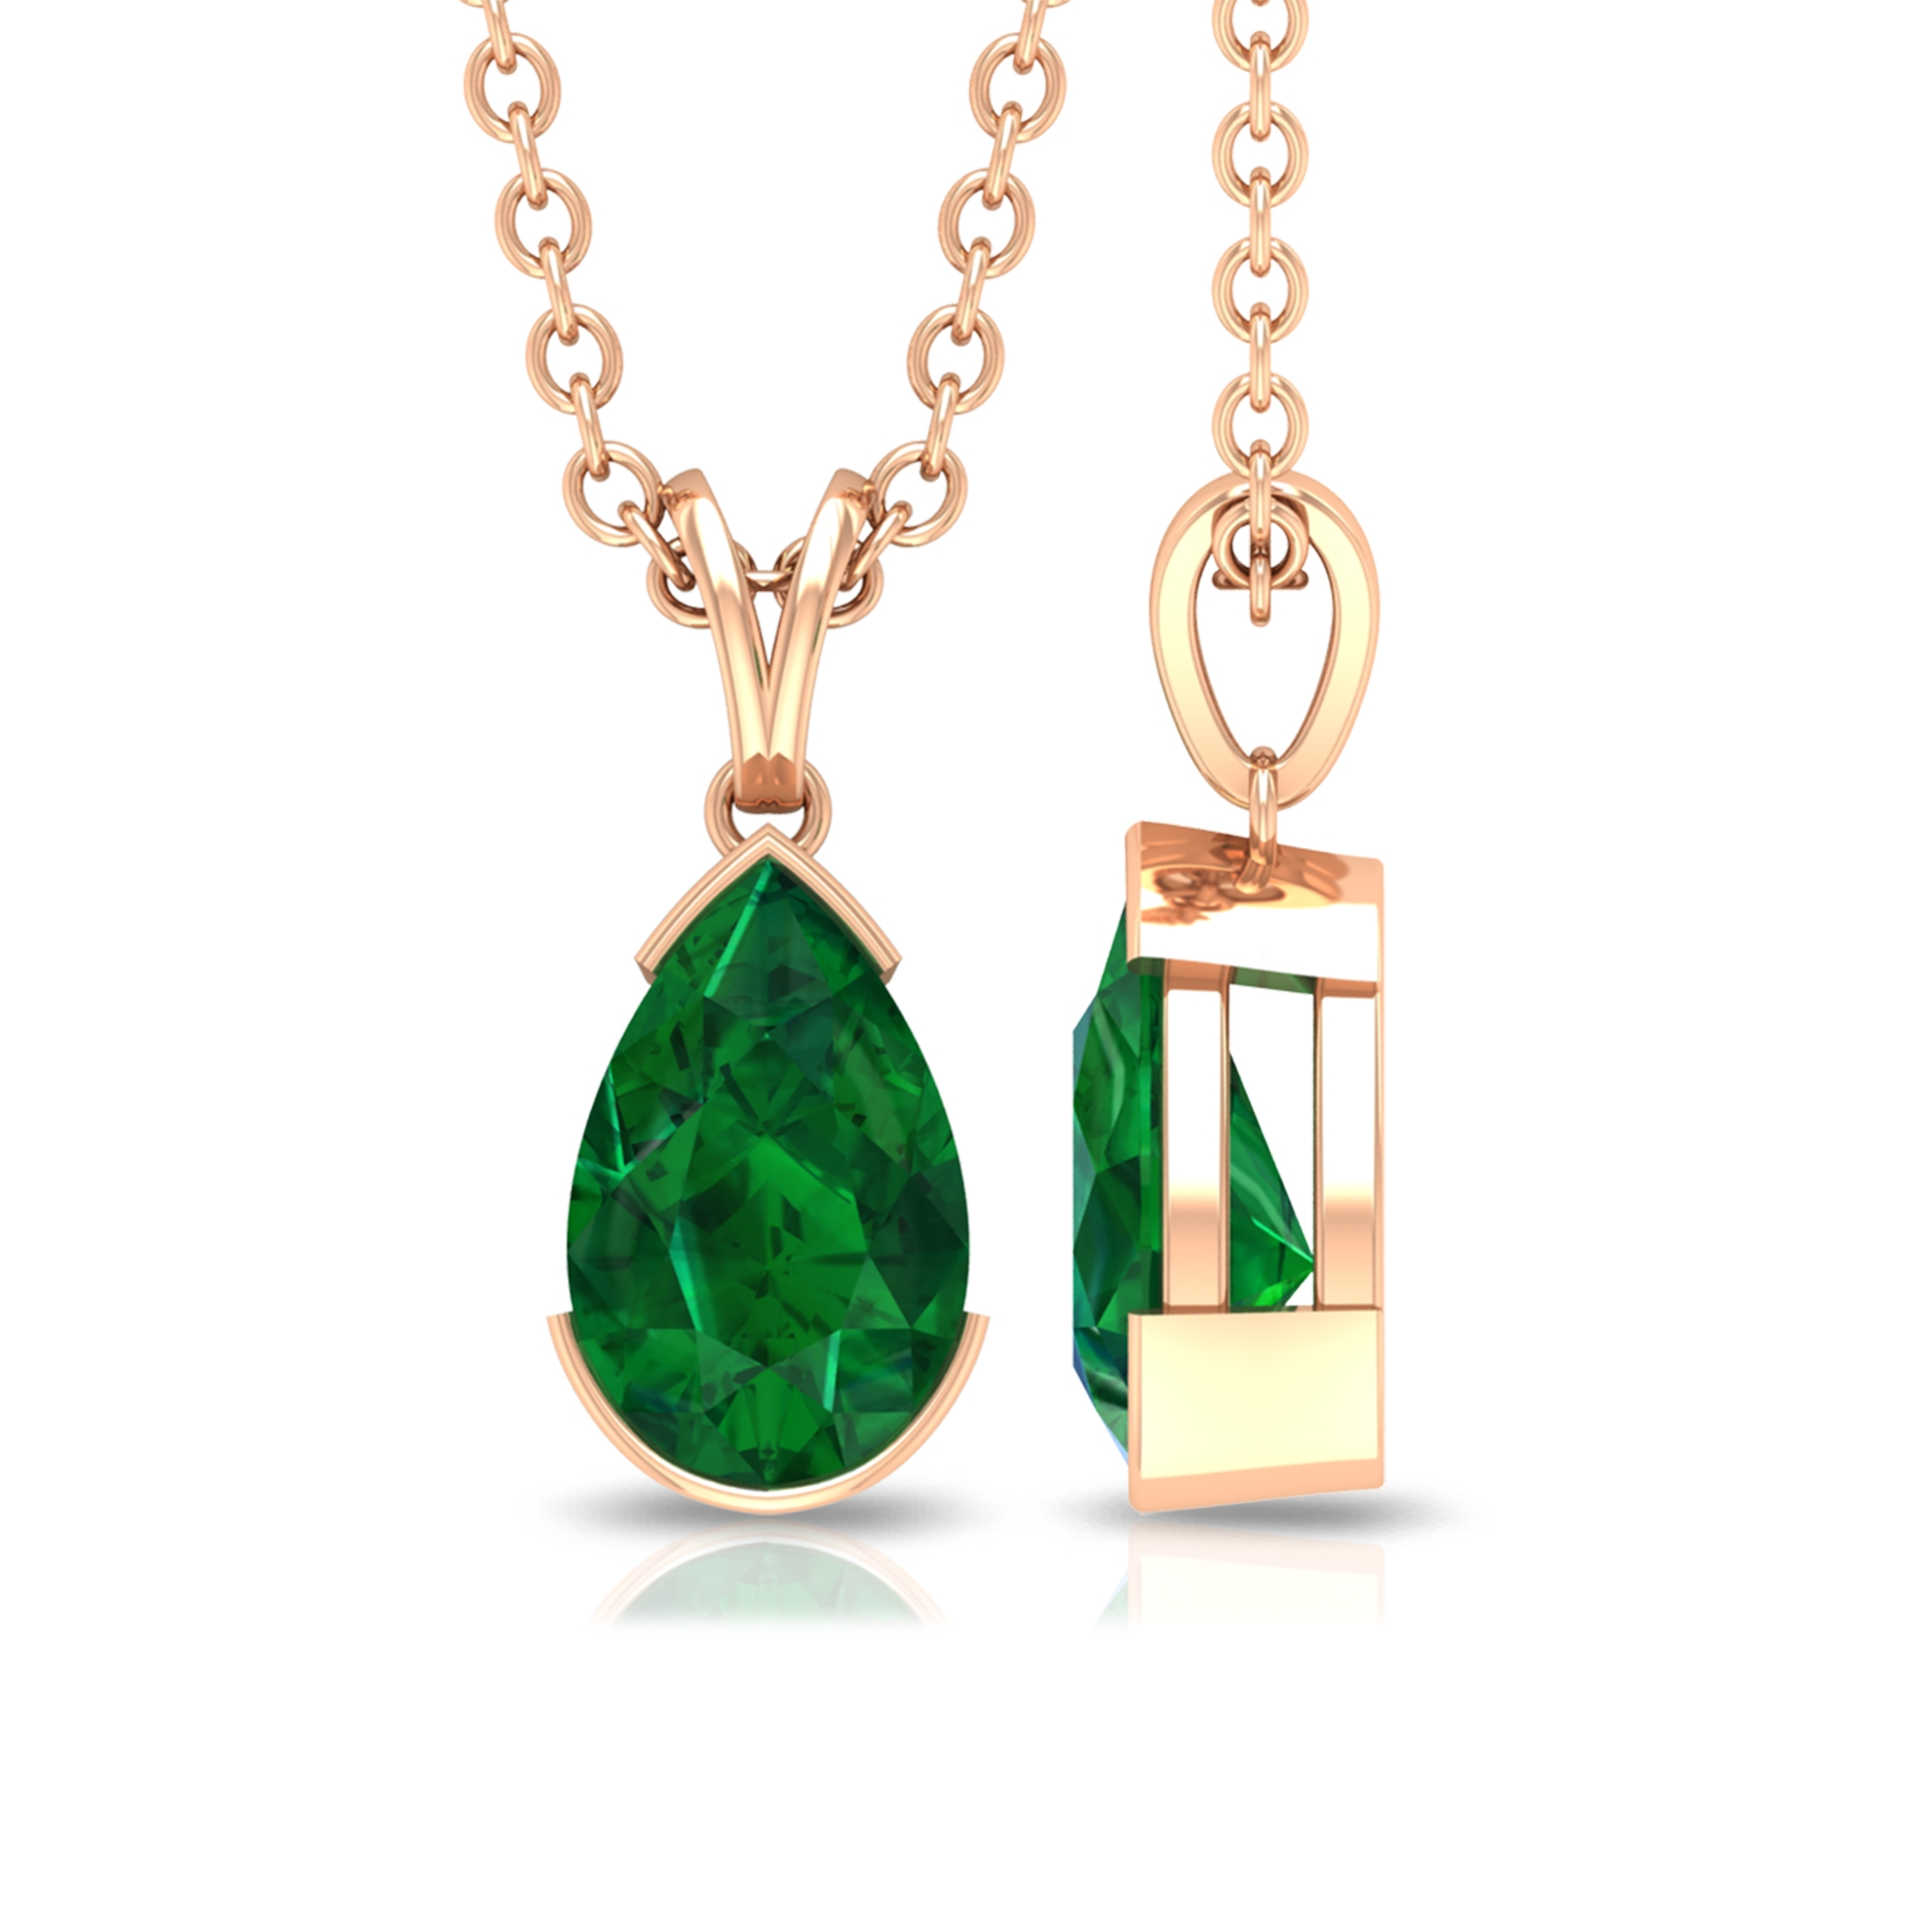 4.5X7 MM Pear Cut Emerald Solitaire Pendant in Half Bezel Setting with Rabbit Ear Bail